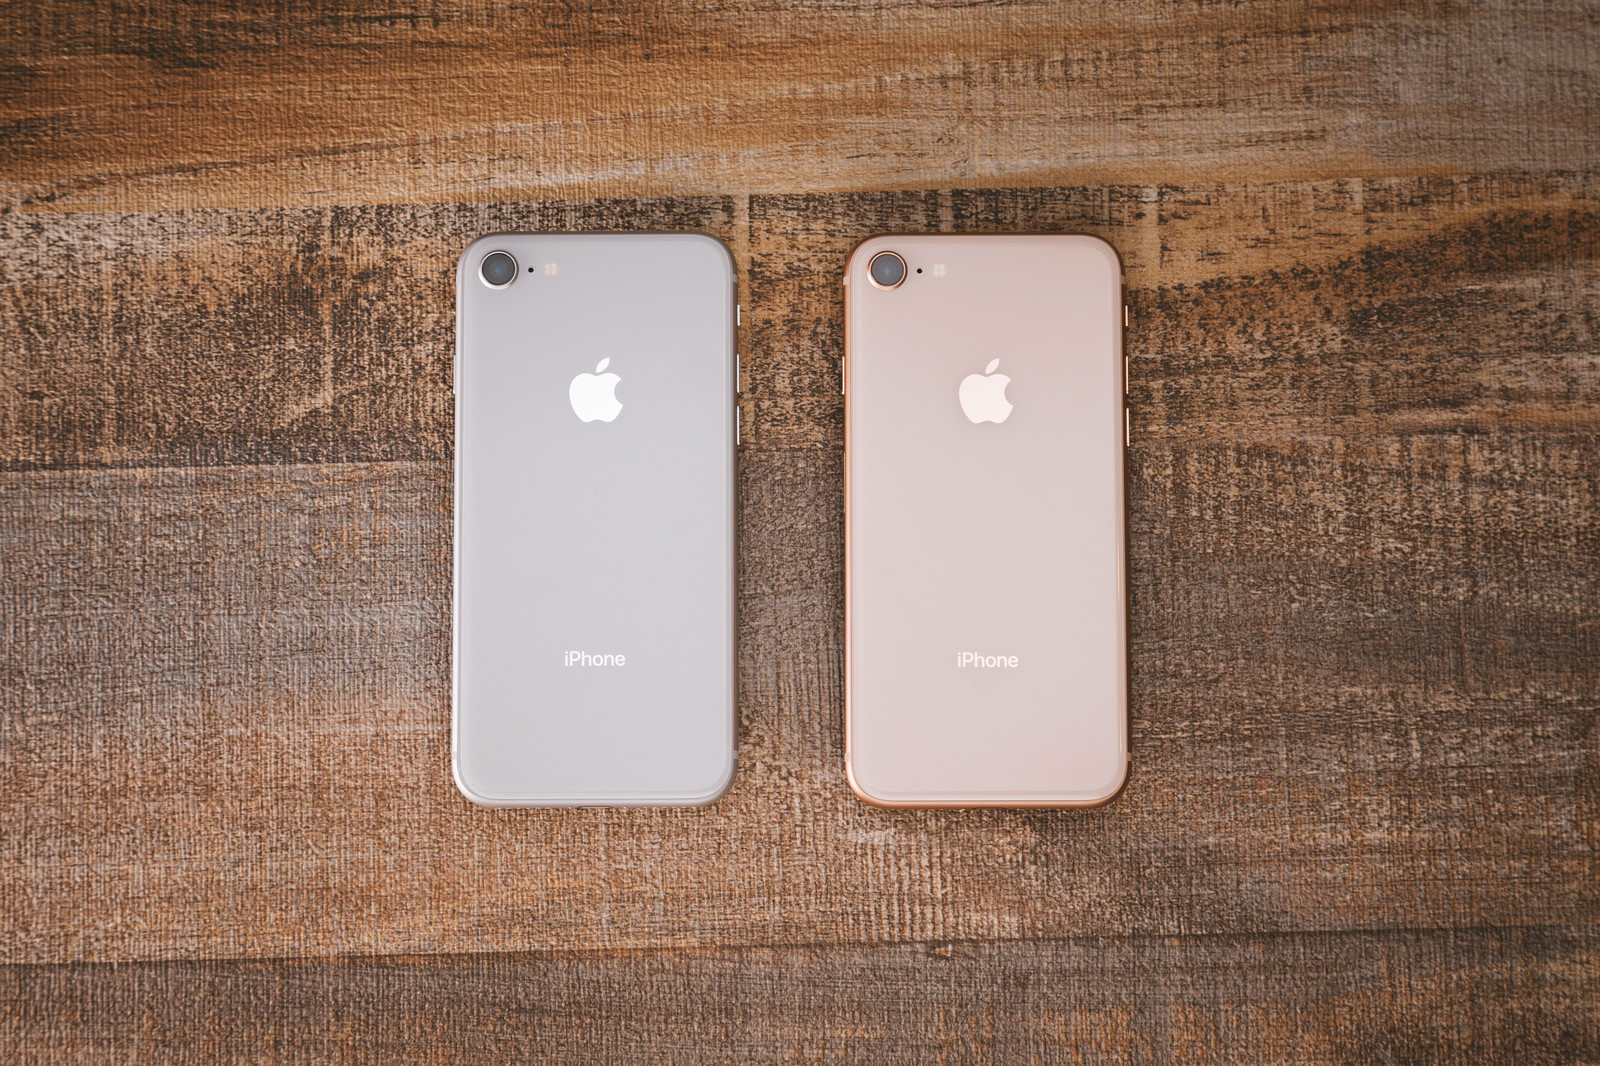 iphone 8 in two colors